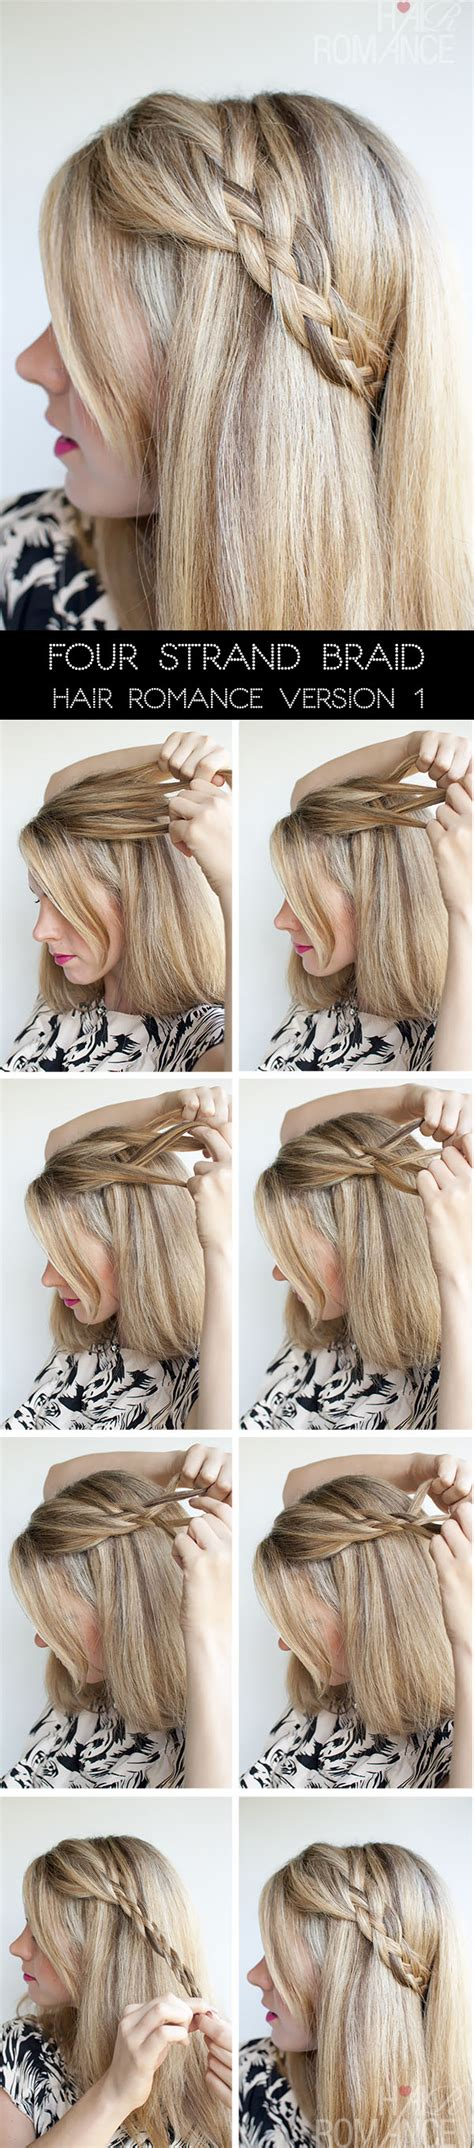 how to braid short hair step by step hairstyle tutorial four strand braids and slide up